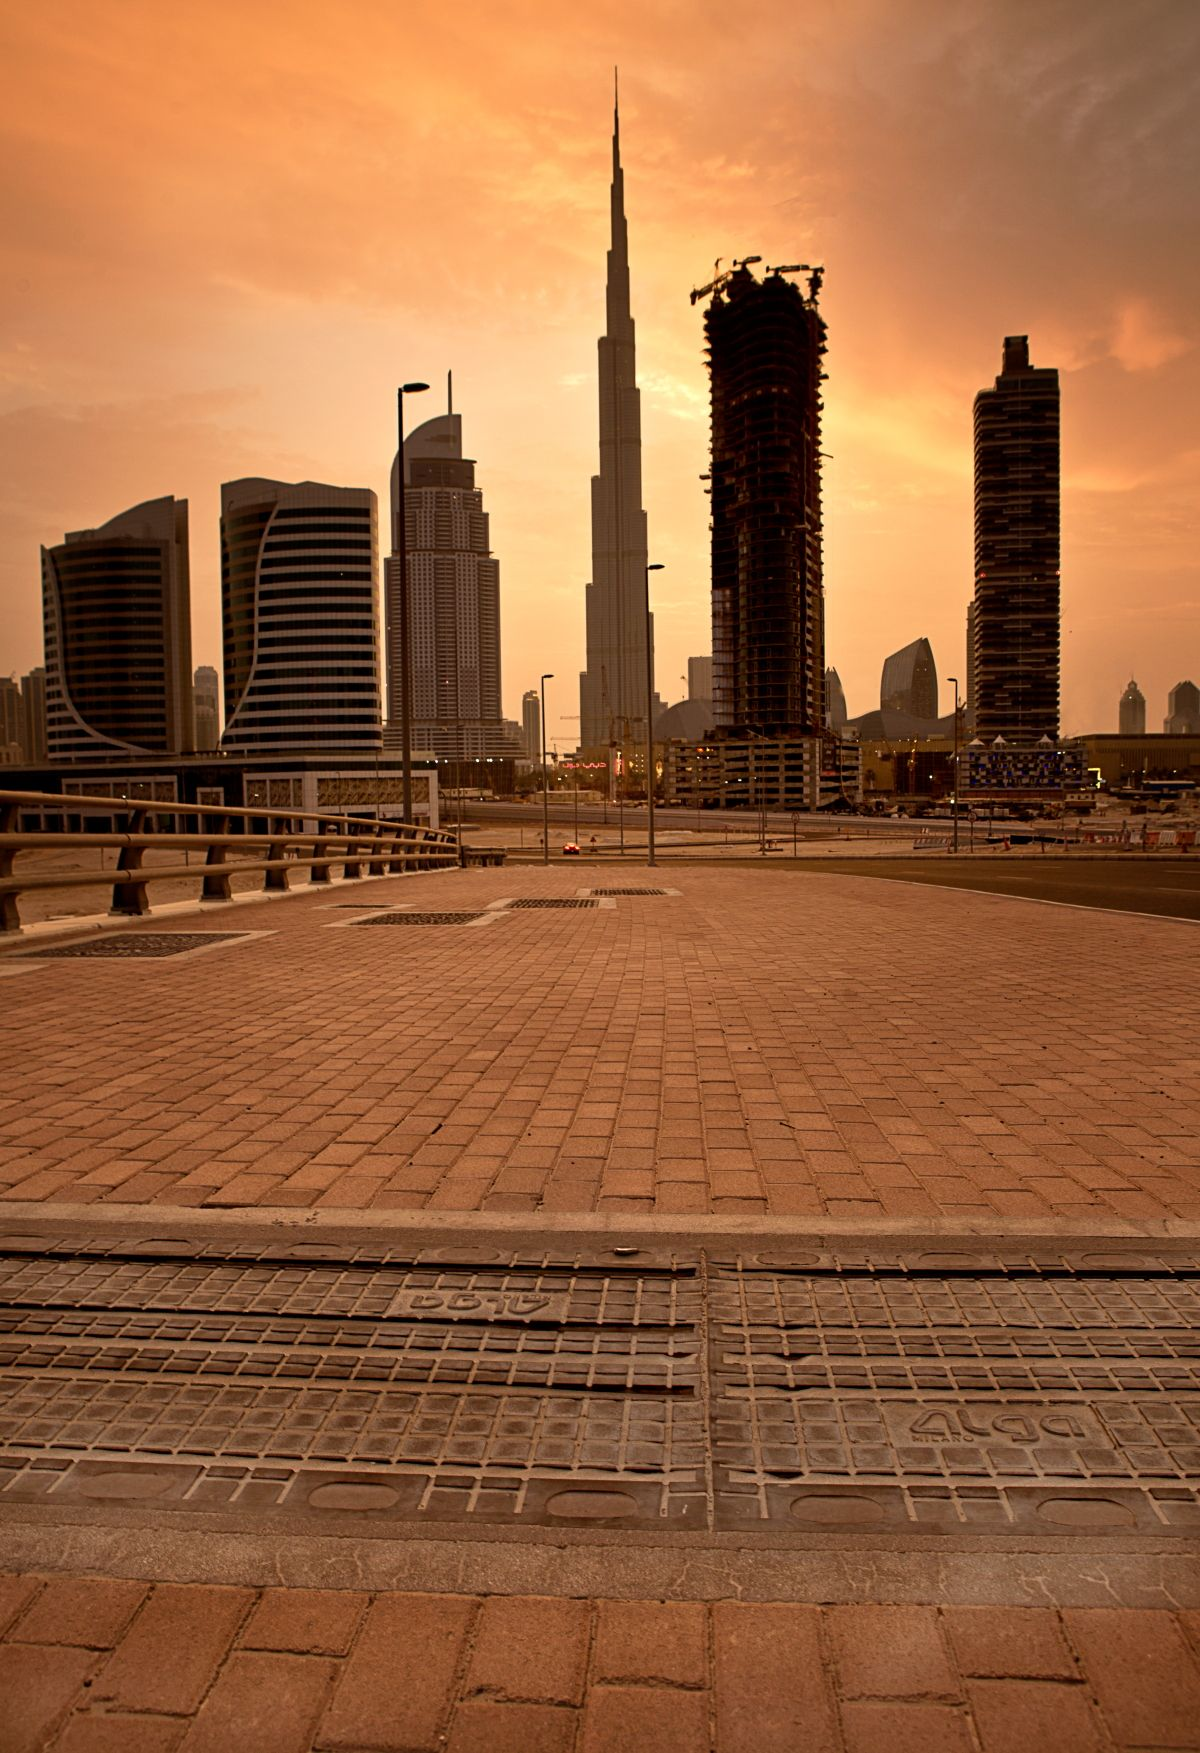 Infrastructure Expansion Joint Infrastructure Dubai